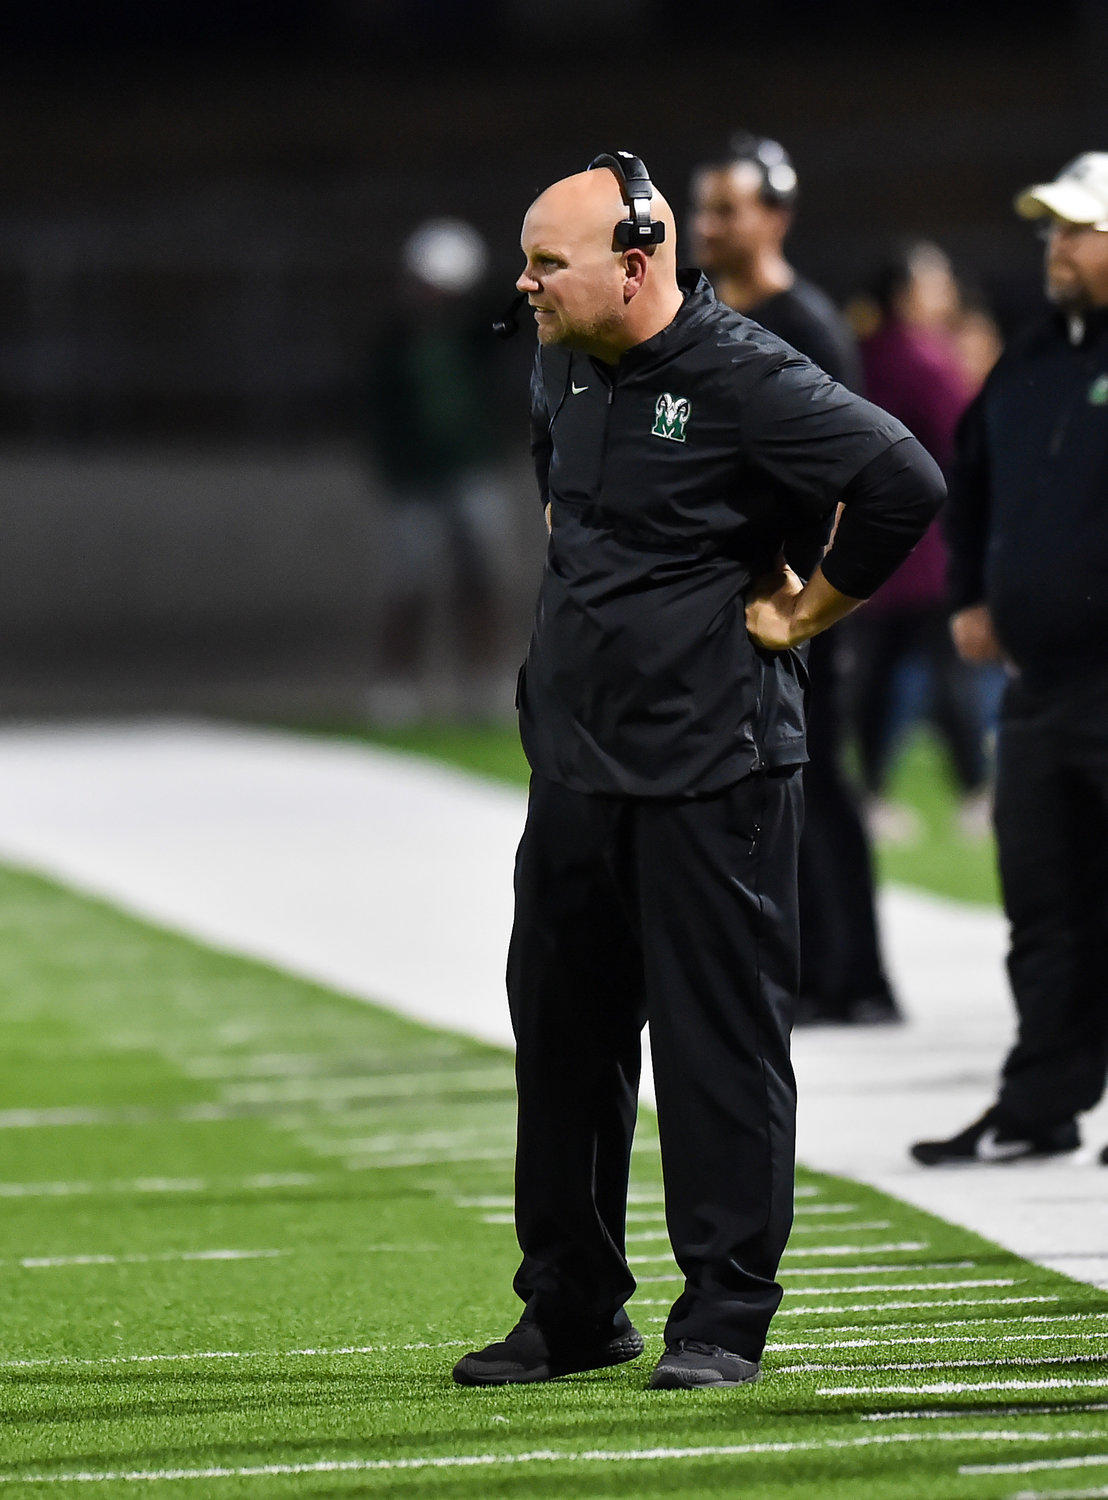 Cypress, Tx. Nov. 21, 2019: Mayde Creeks head coach Mike Rabe looks on as he see's his Rams football teams season coming to an end during the area playoff game between Mayde Creek and Cypress Creek at Pridgeon Stadium. (Photo by Mark Goodman / Katy Times)